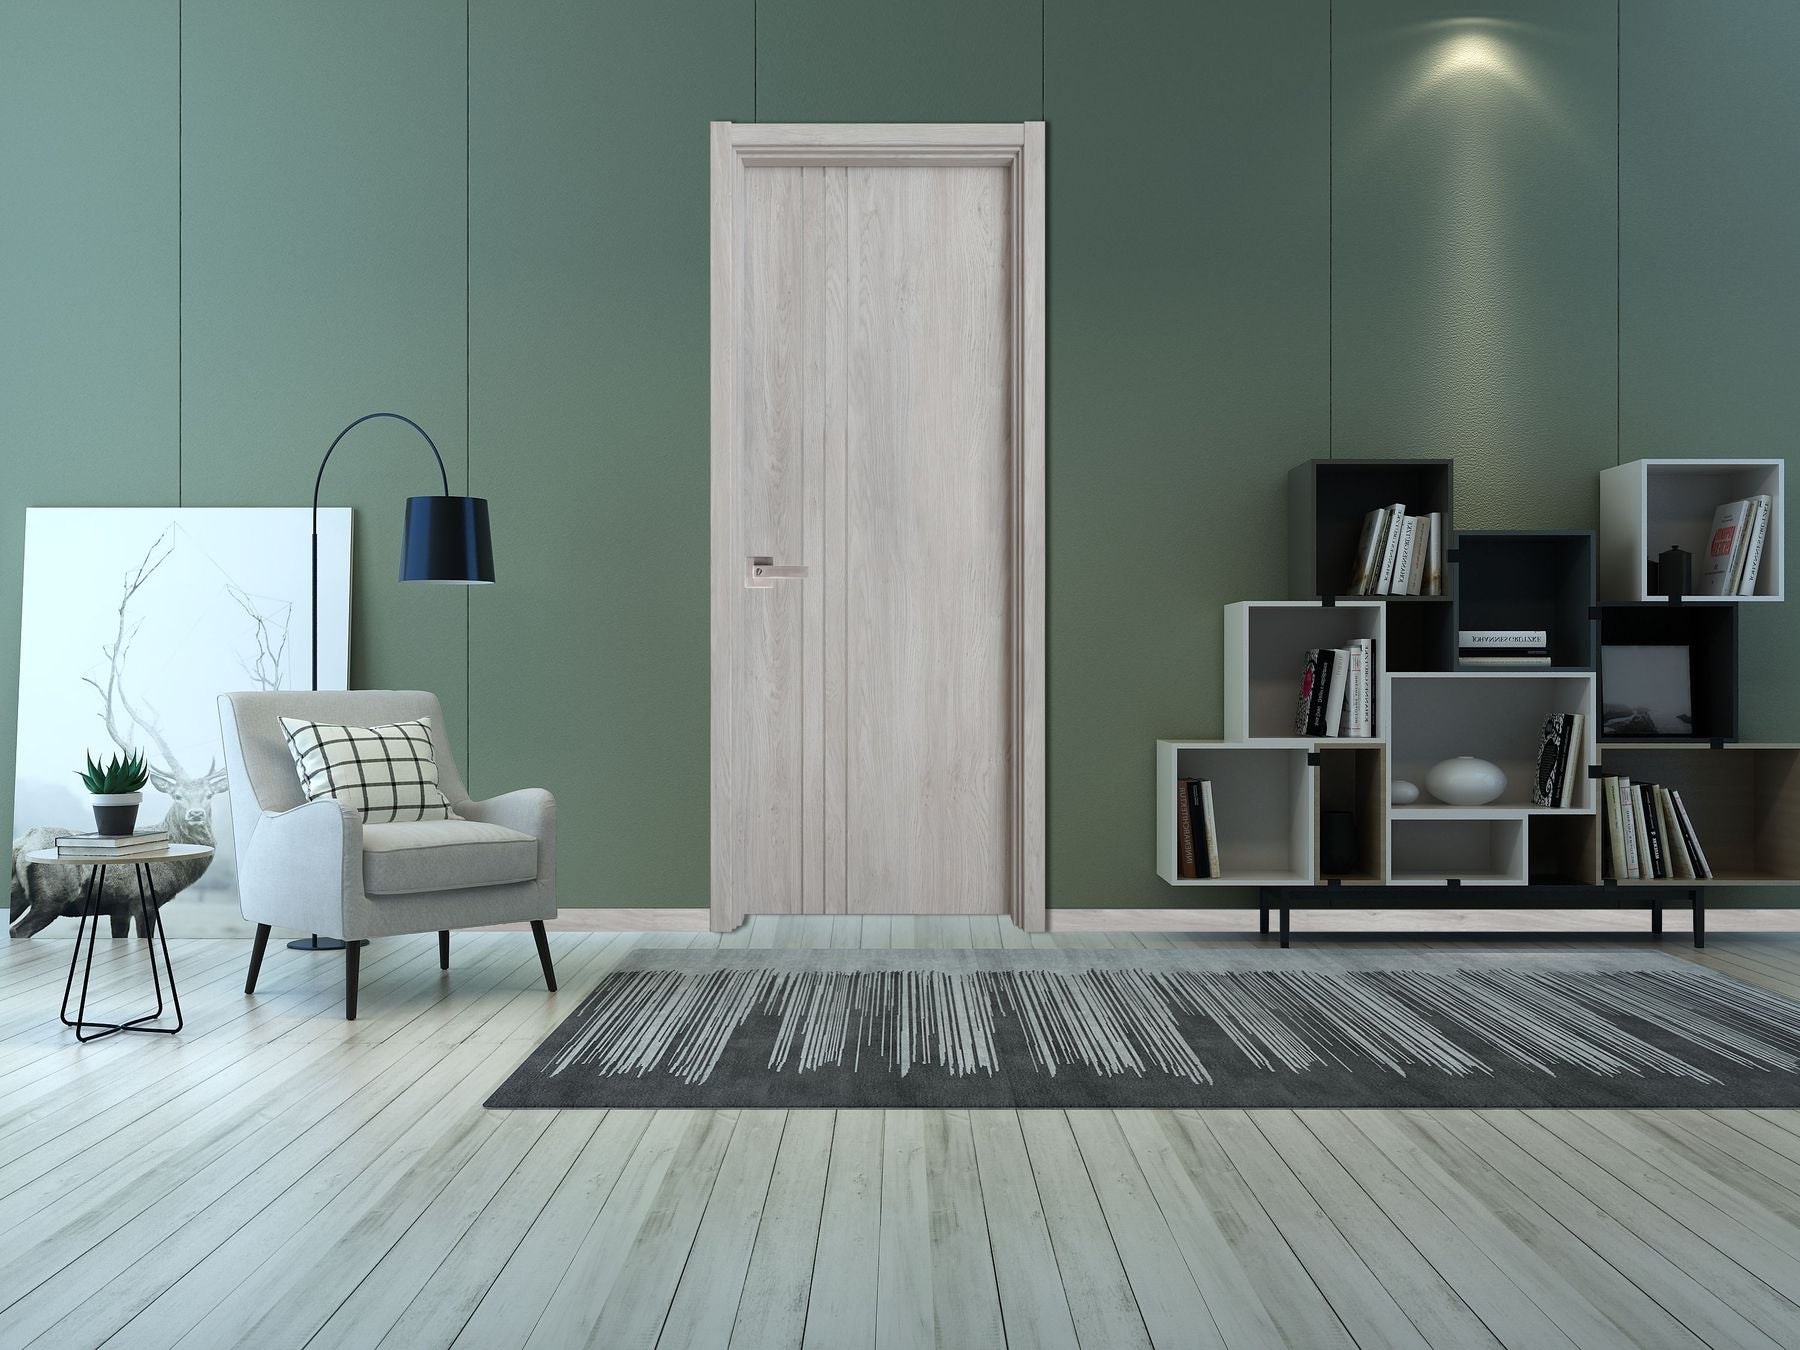 A Homeowner's Guide: Are Hollow Interior Doors Worth Buying?